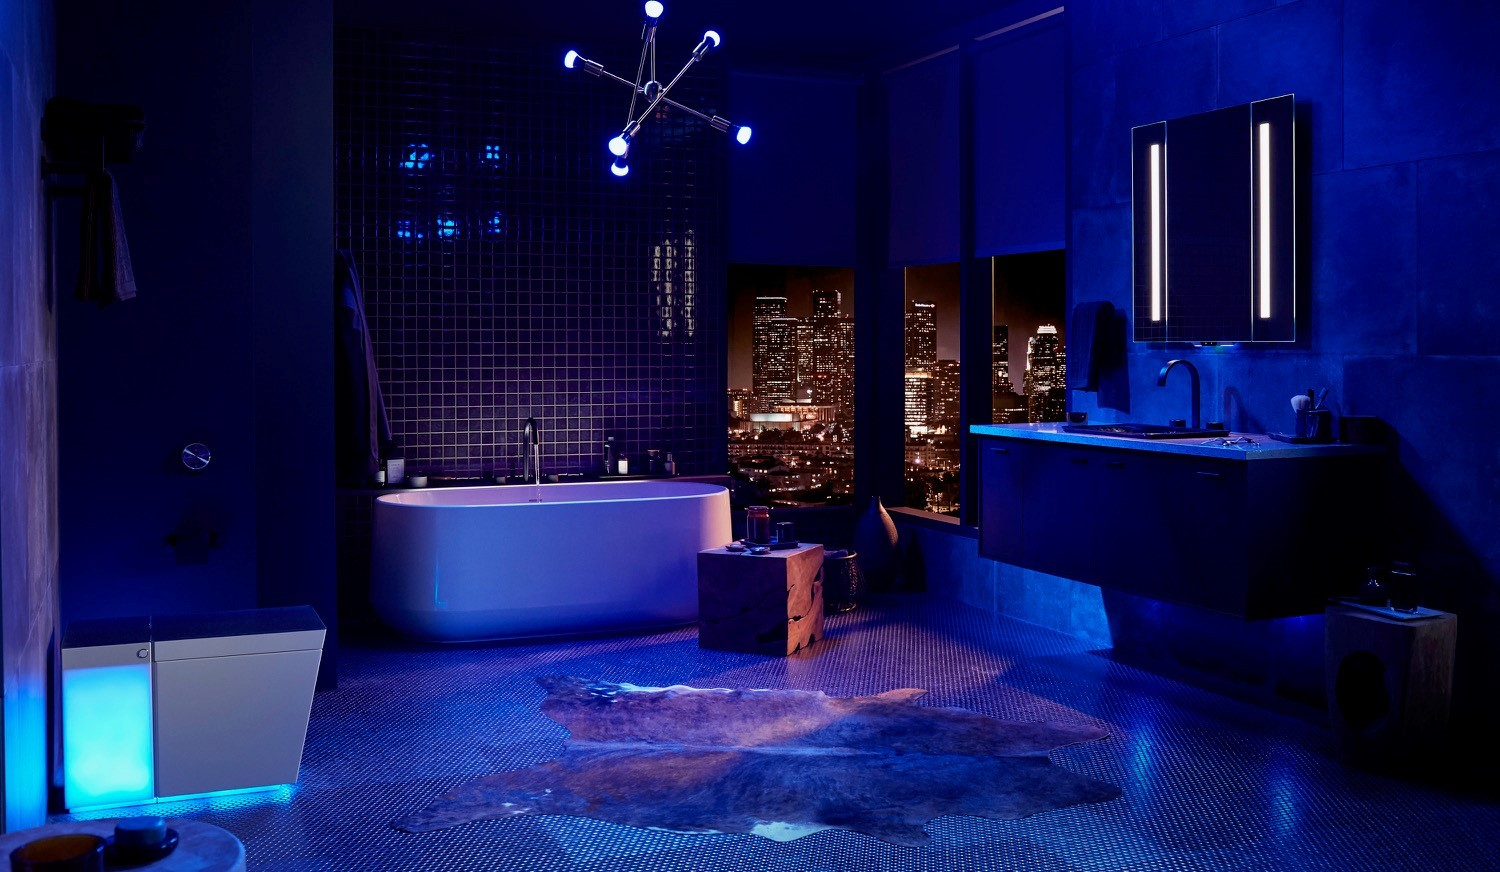 Bathroom Kohler Kohler Announces Smart Products For The Kitchen And Bathroom